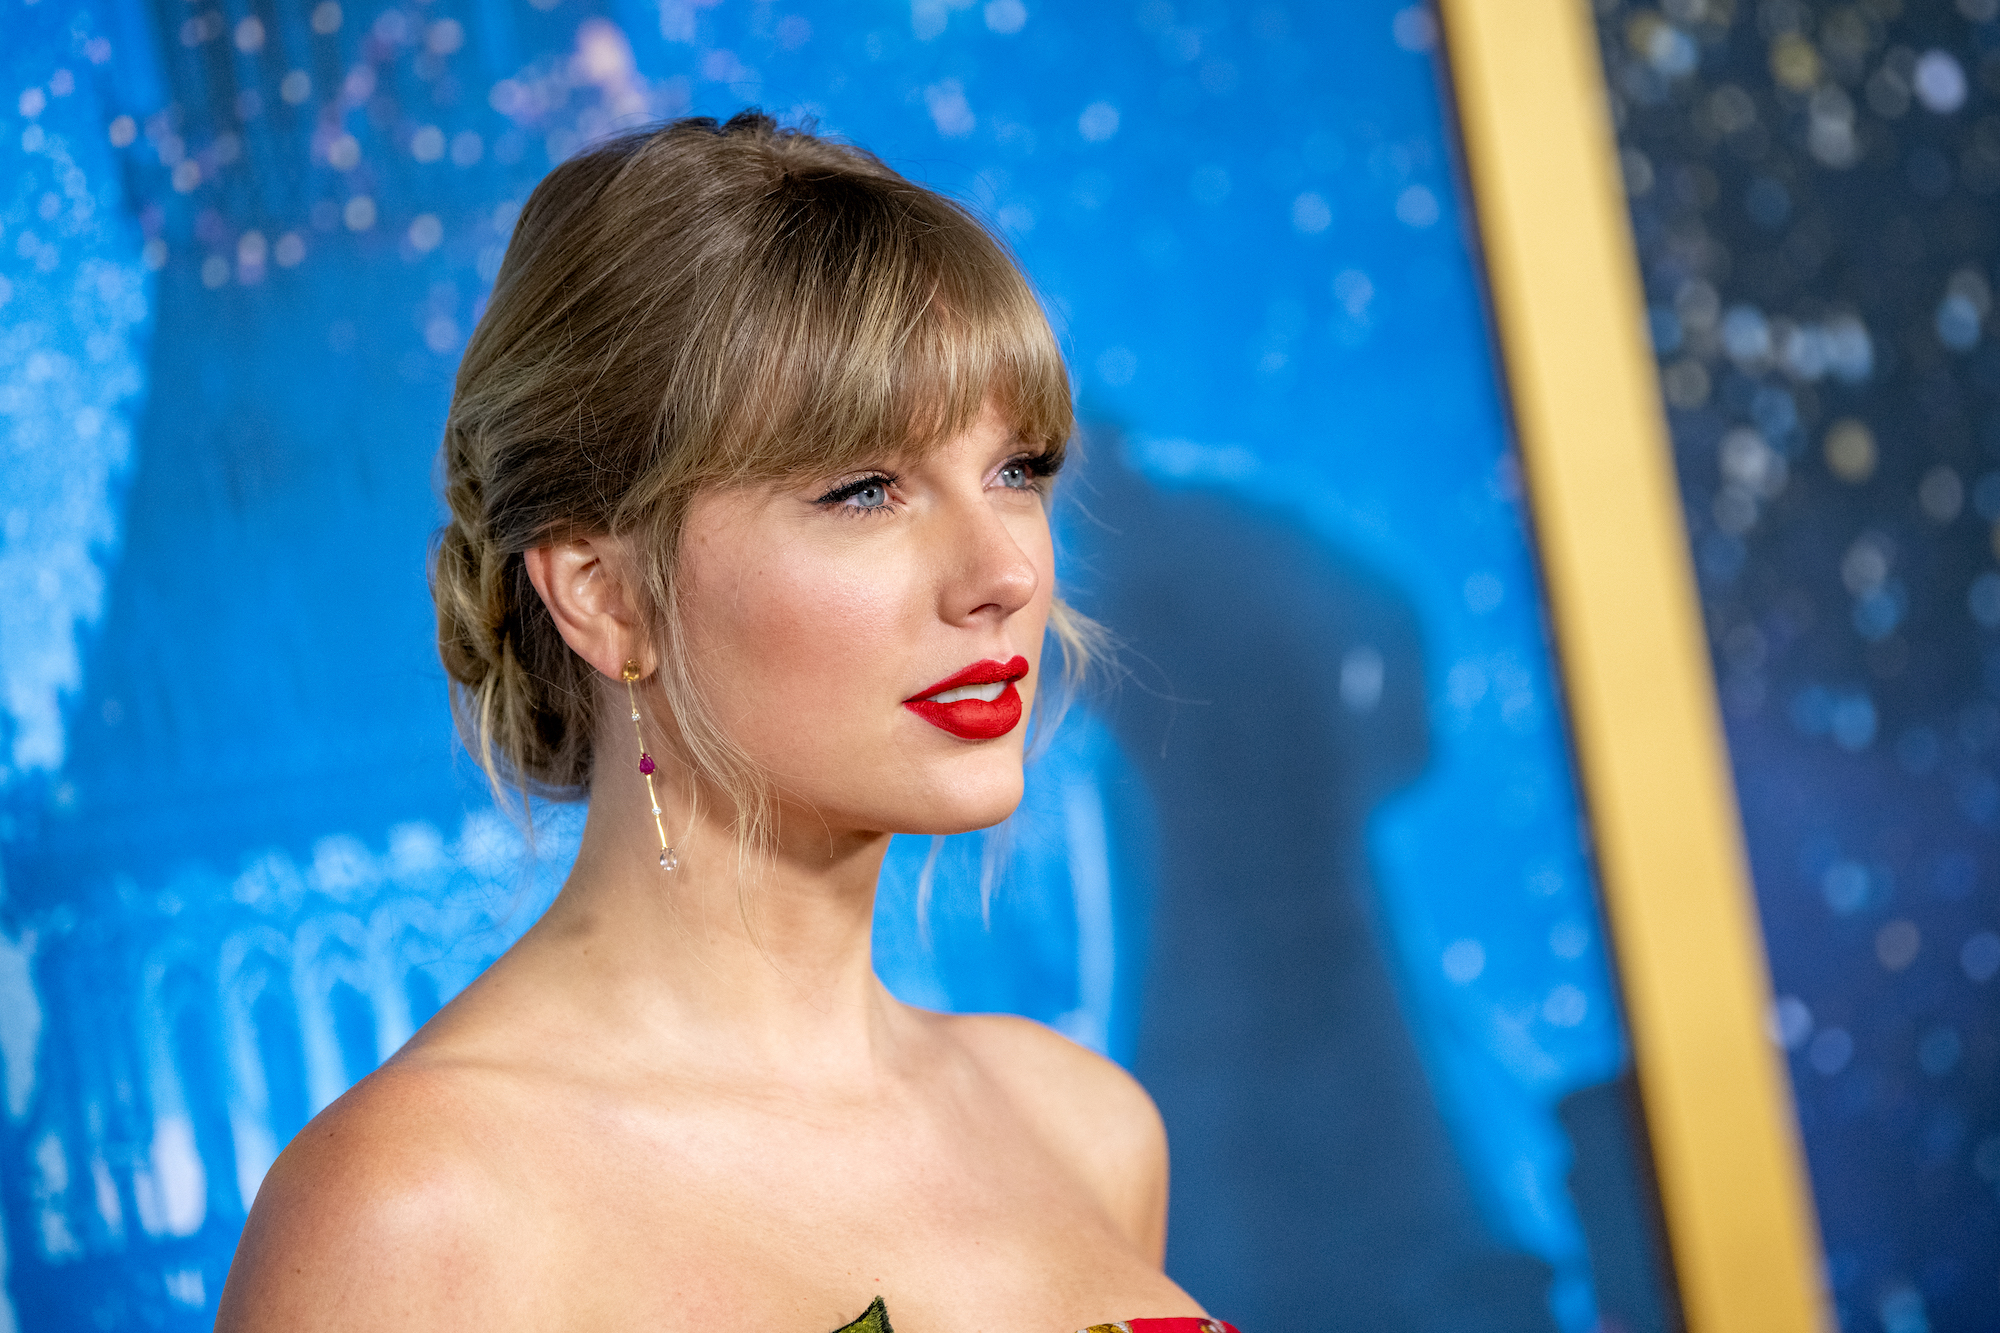 Taylor Swift at the 'Cats' World Premiere at Alice Tully Hall, Lincoln Center on December 16, 2019.